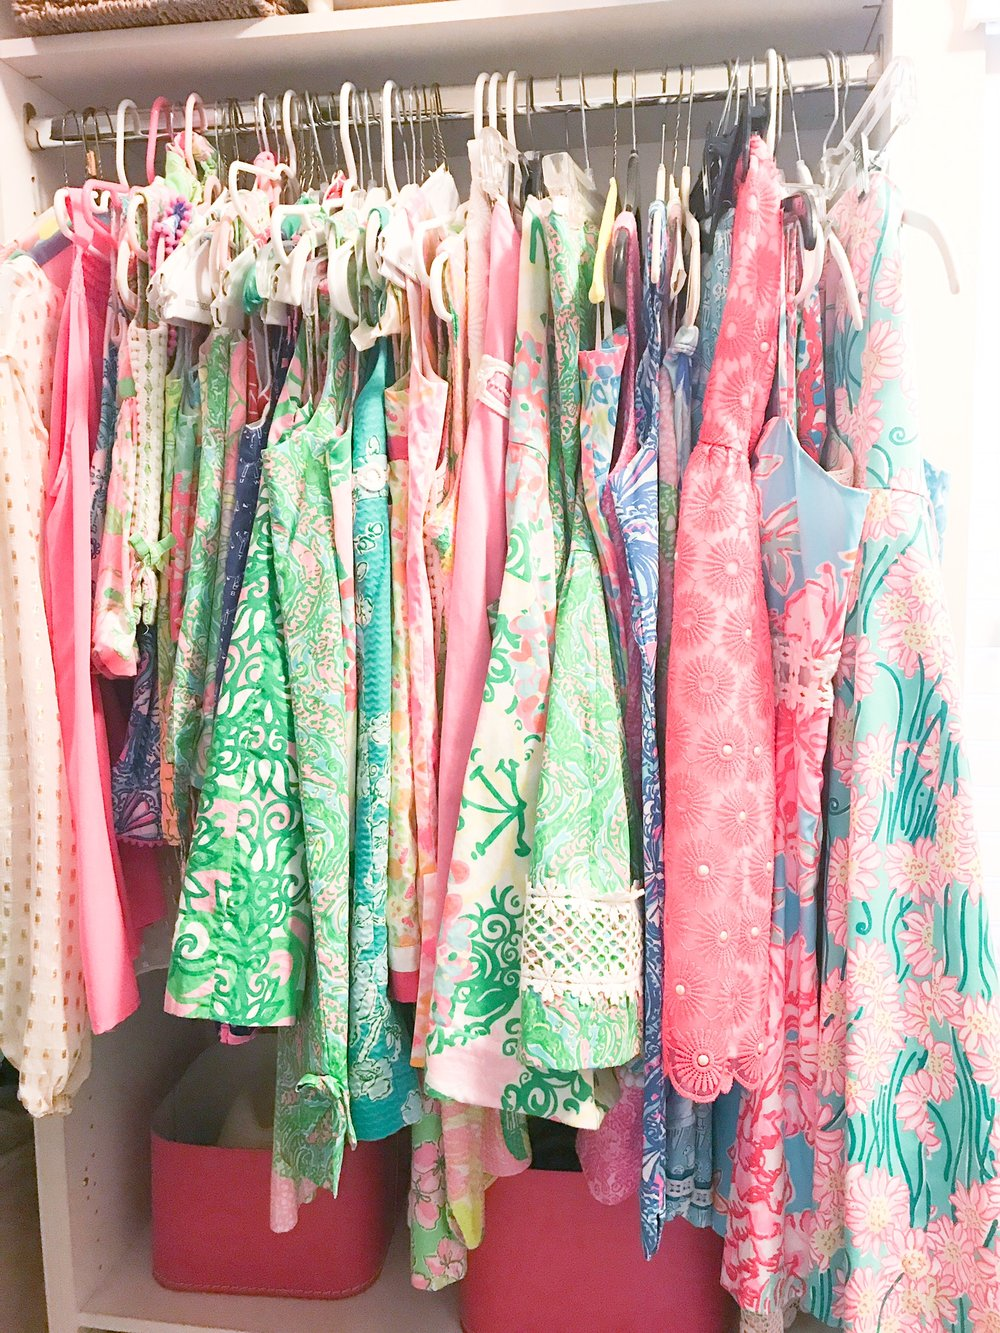 A closet full of memories in Lilly.